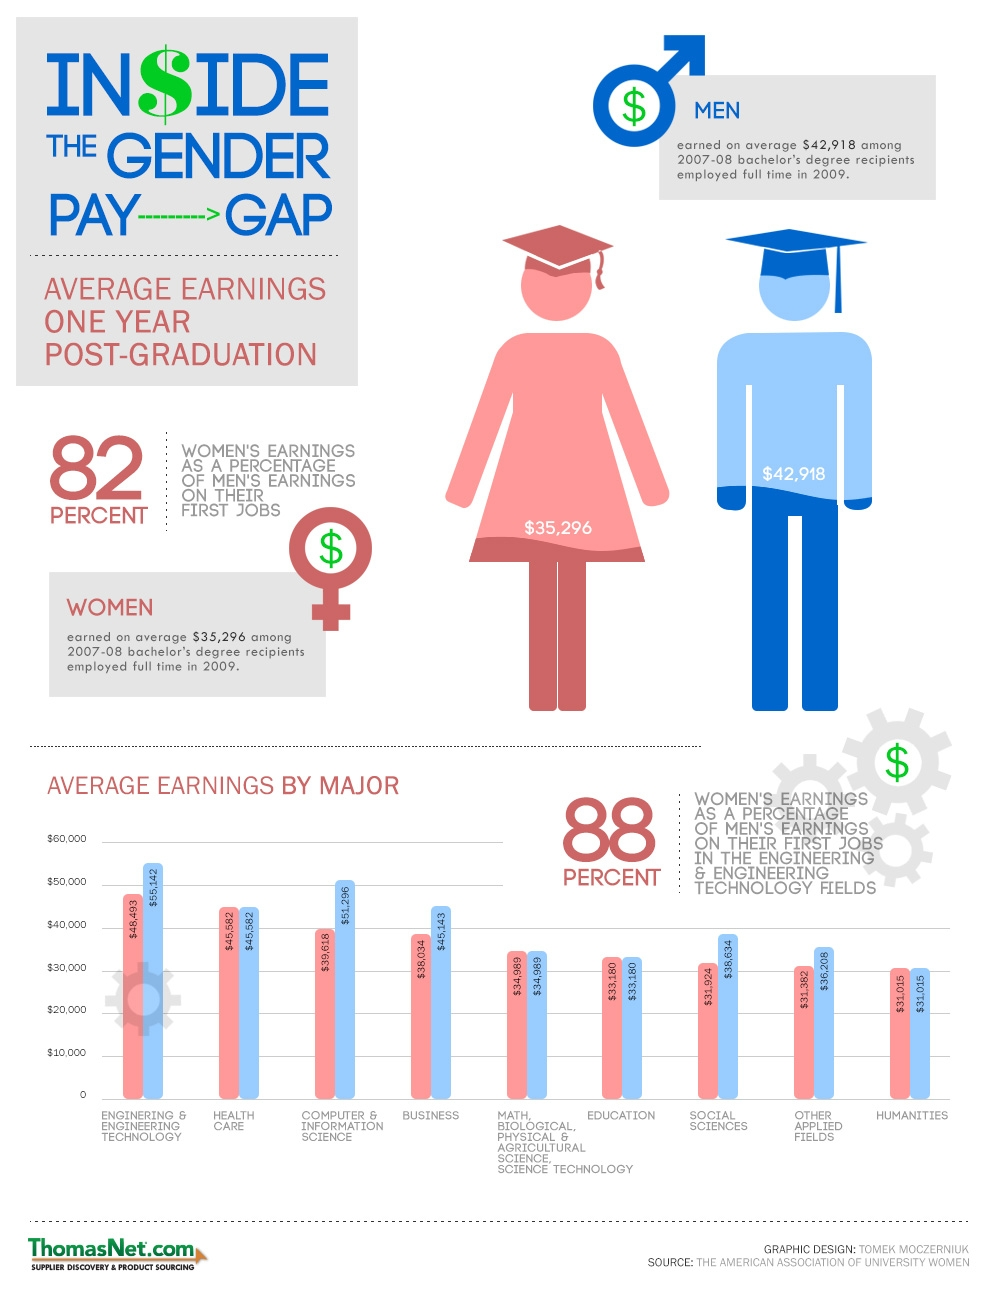 impact of college degree on gender wage gap Women in elite jobs face stubborn pay gap gender disparities in income are greater in many white-collar us professions than blue-collar and don't lend themselves to legislative remedies.